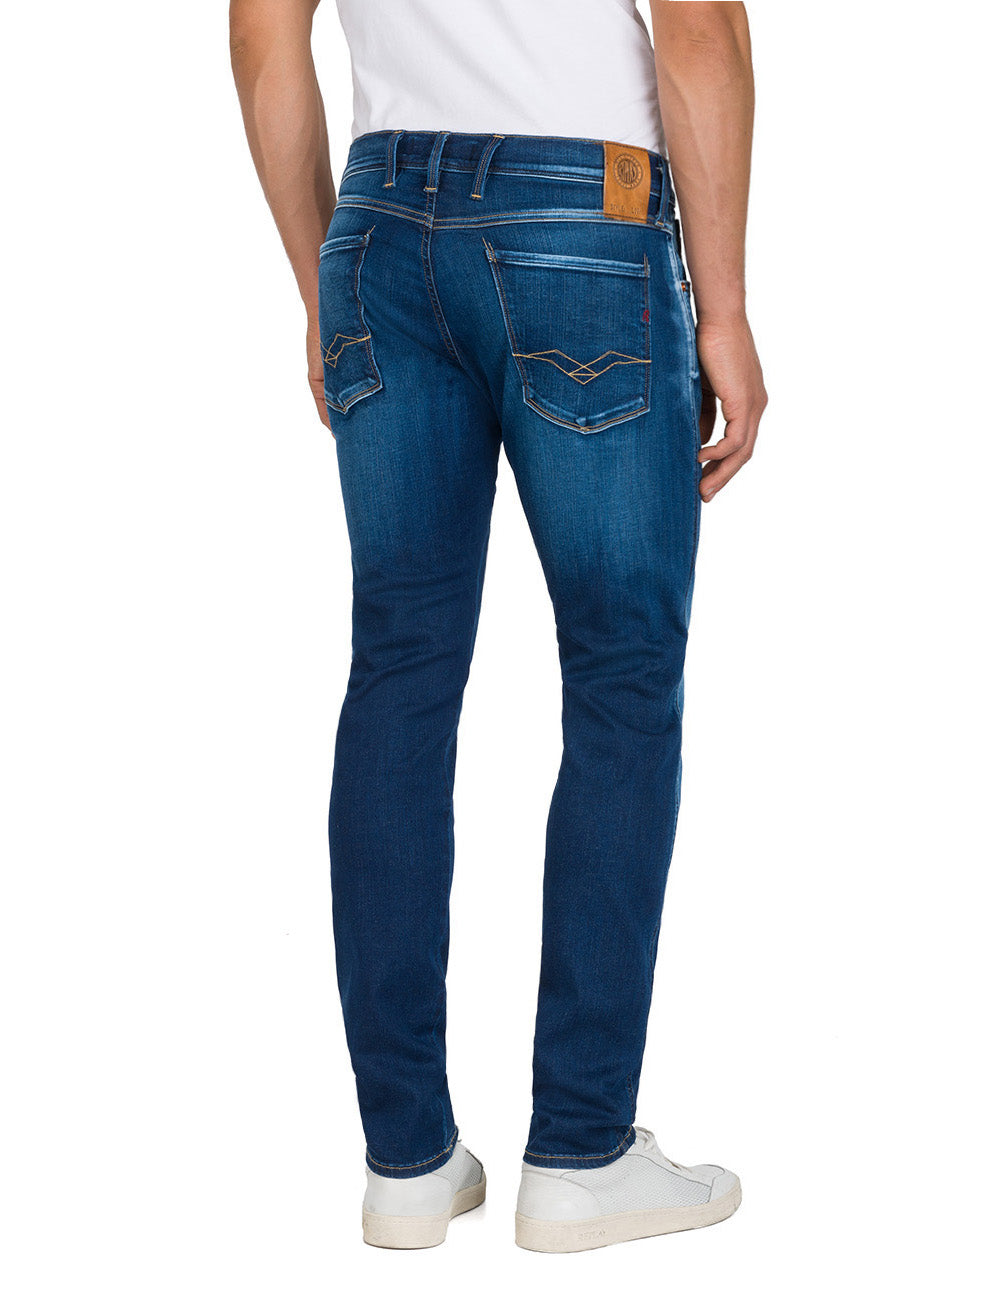 Replay Jeans Surf Blue Edition Ambass Fit Replay - 7clothing Cardiff